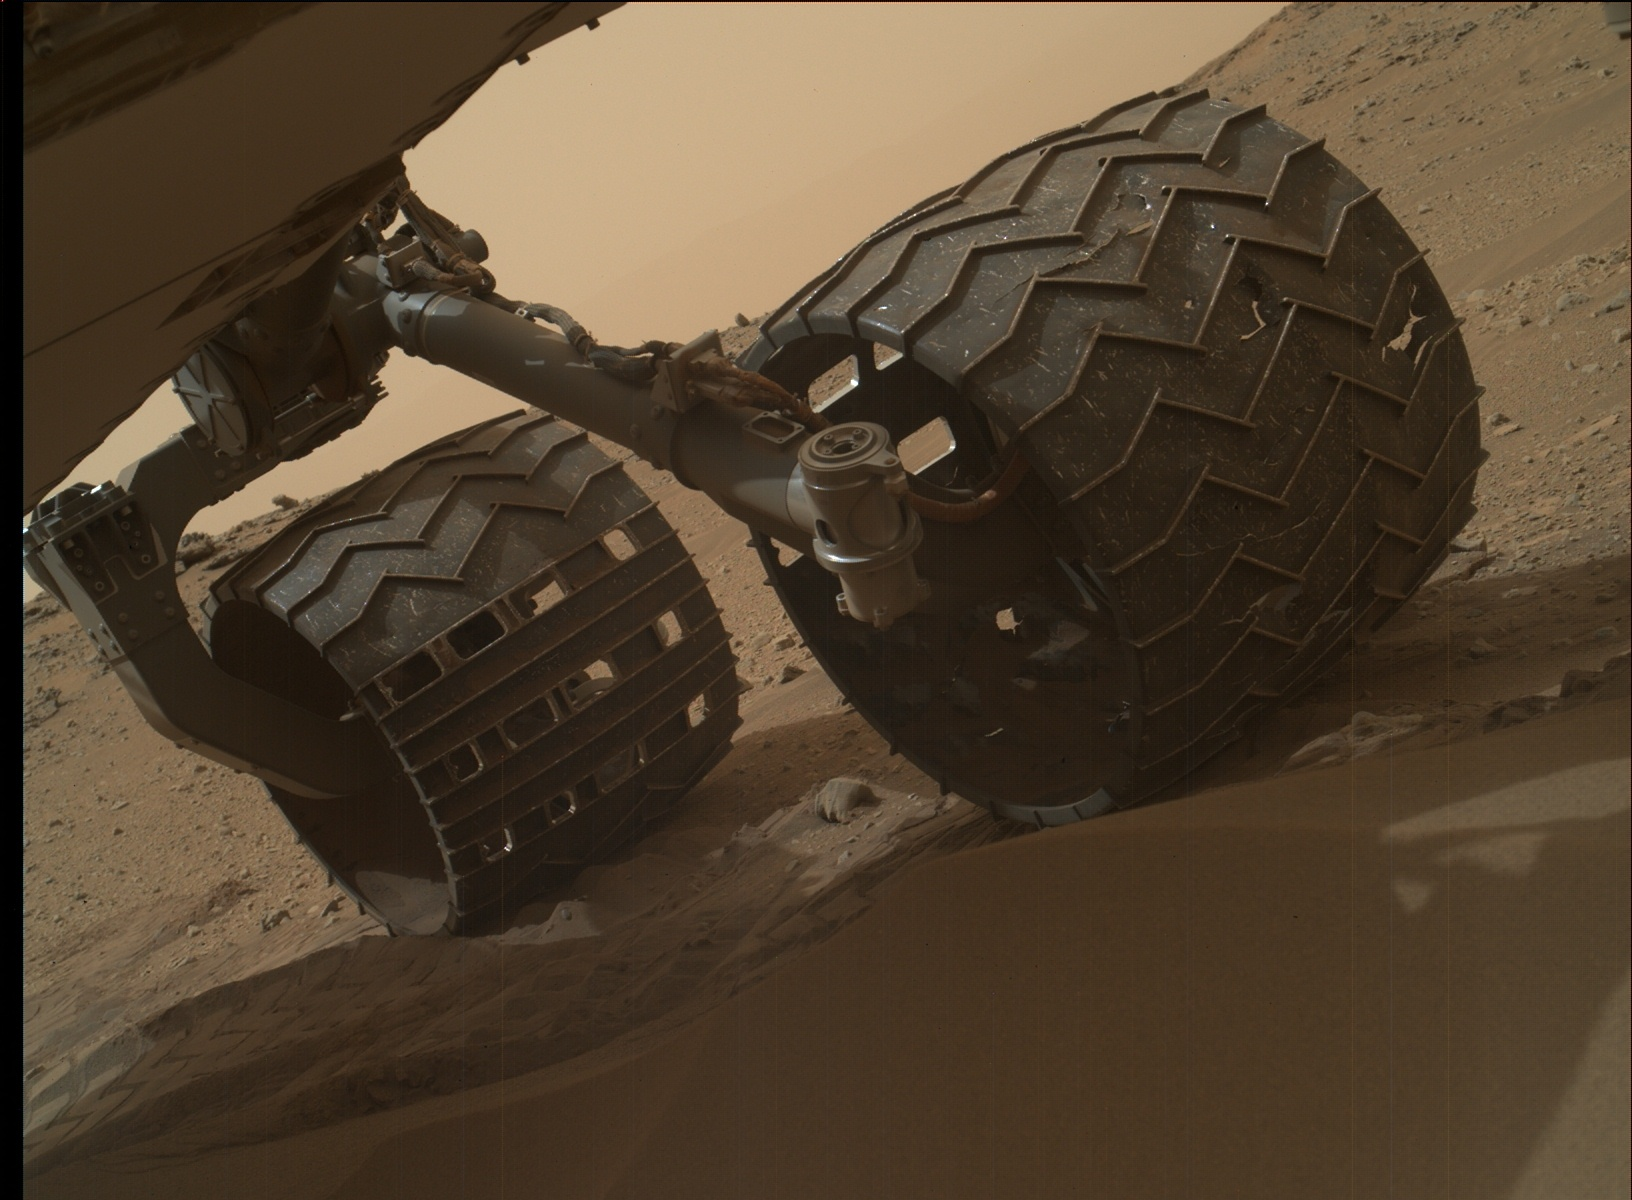 Nasa's Mars rover Curiosity acquired this image using its Mars Hand Lens Imager (MAHLI) on Sol 803